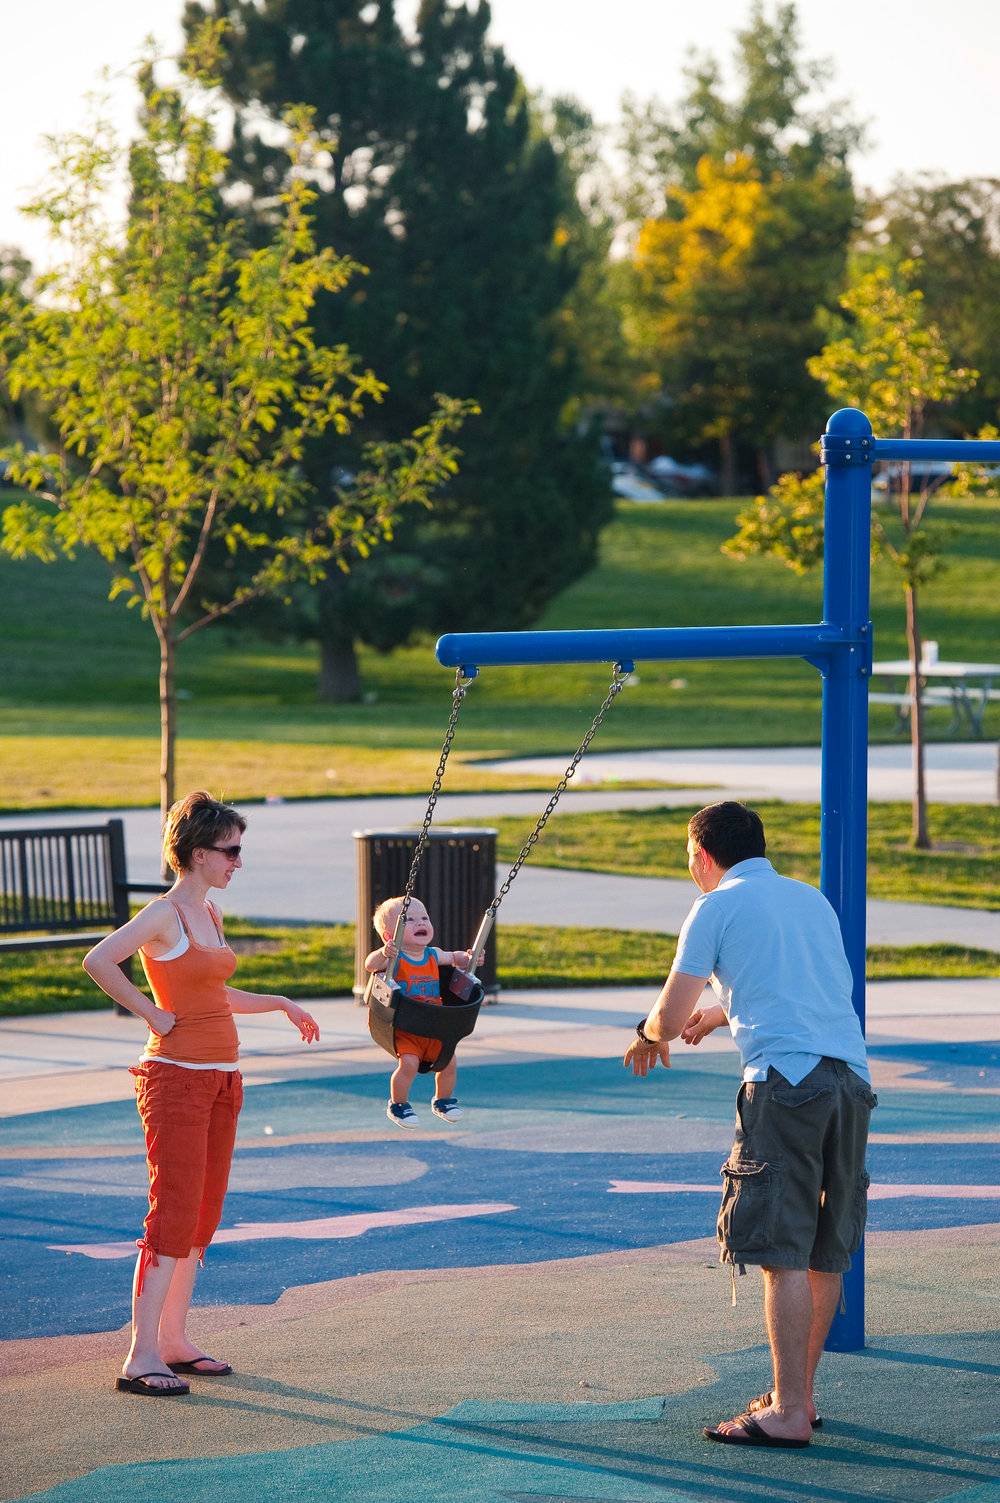 Parents pushing their child on a swing together at a park